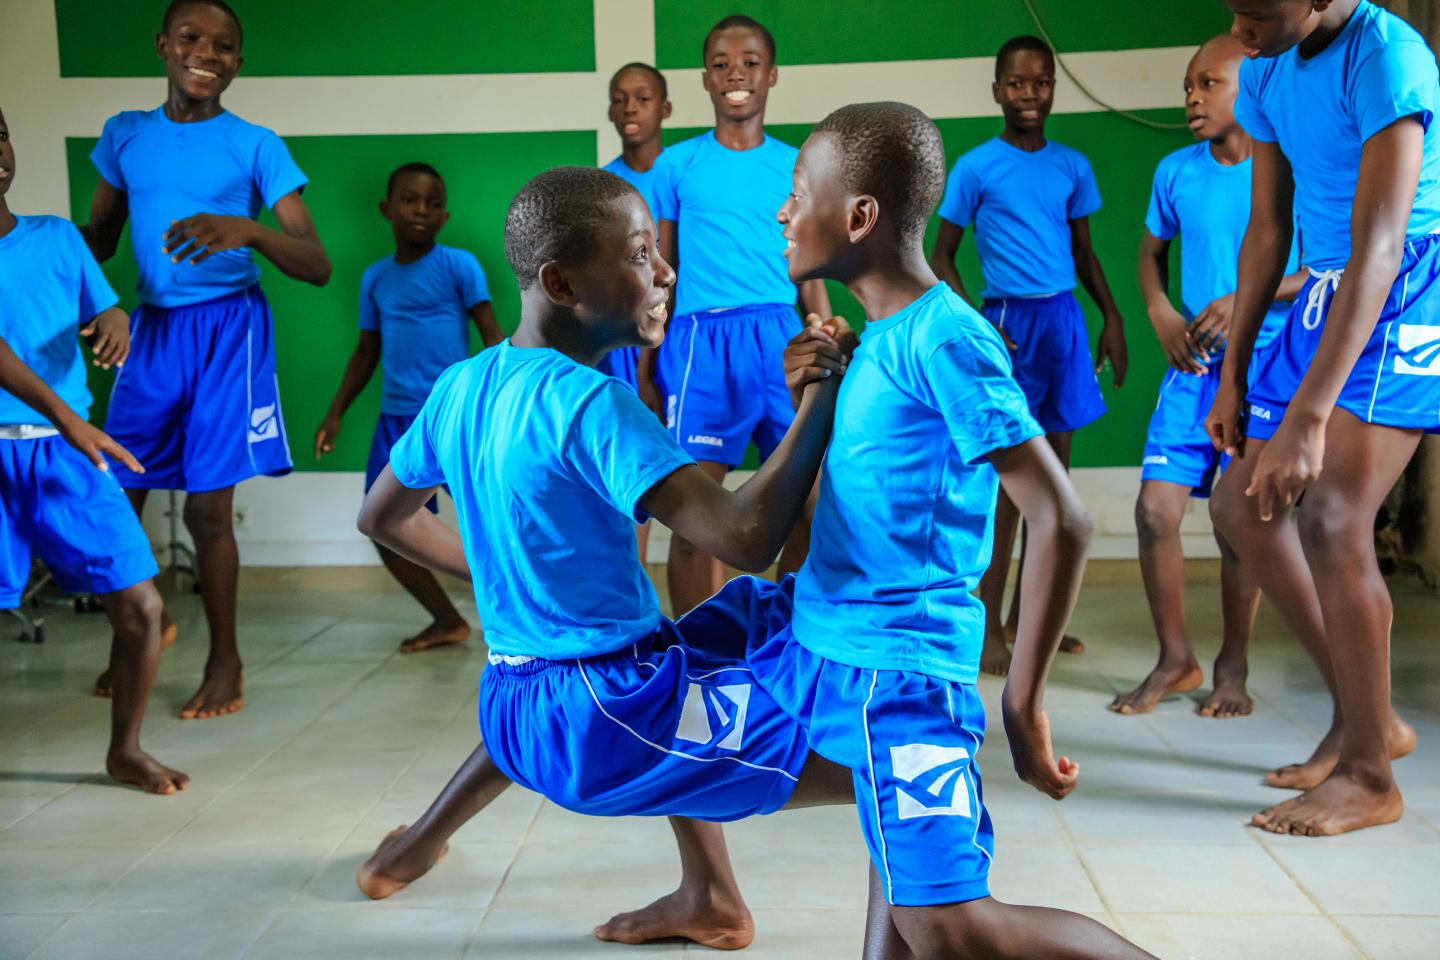 Convention on the Rights of the Child: A group of children dancing at an orphanage in Cote d'Ivoire to mark World Children's Day.